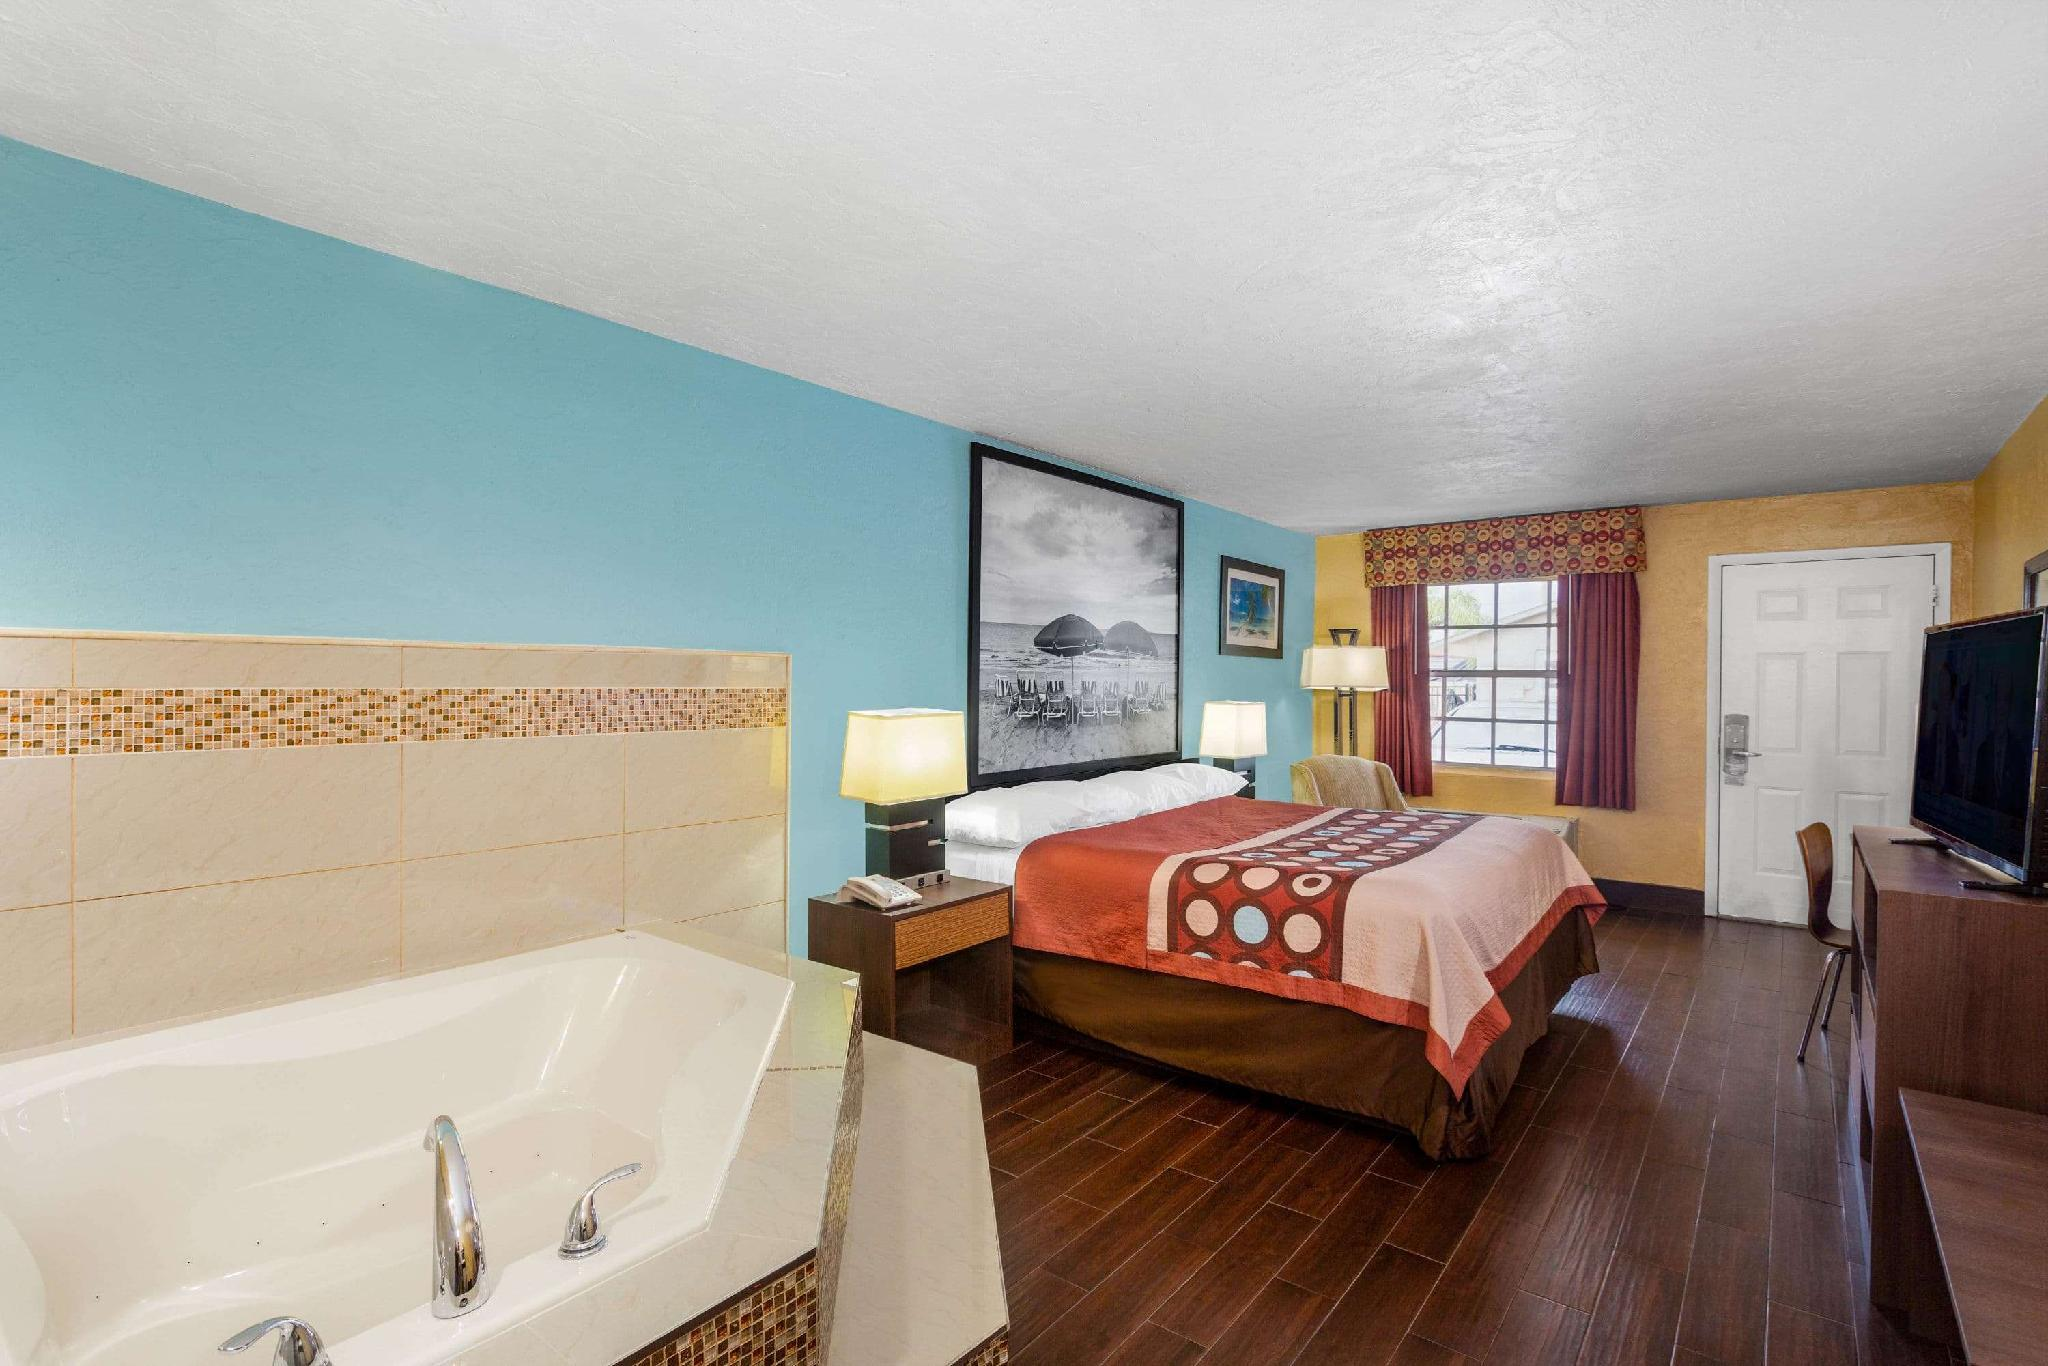 1 King Bed, Jacuzzi Studio Suite, Non-Smoking